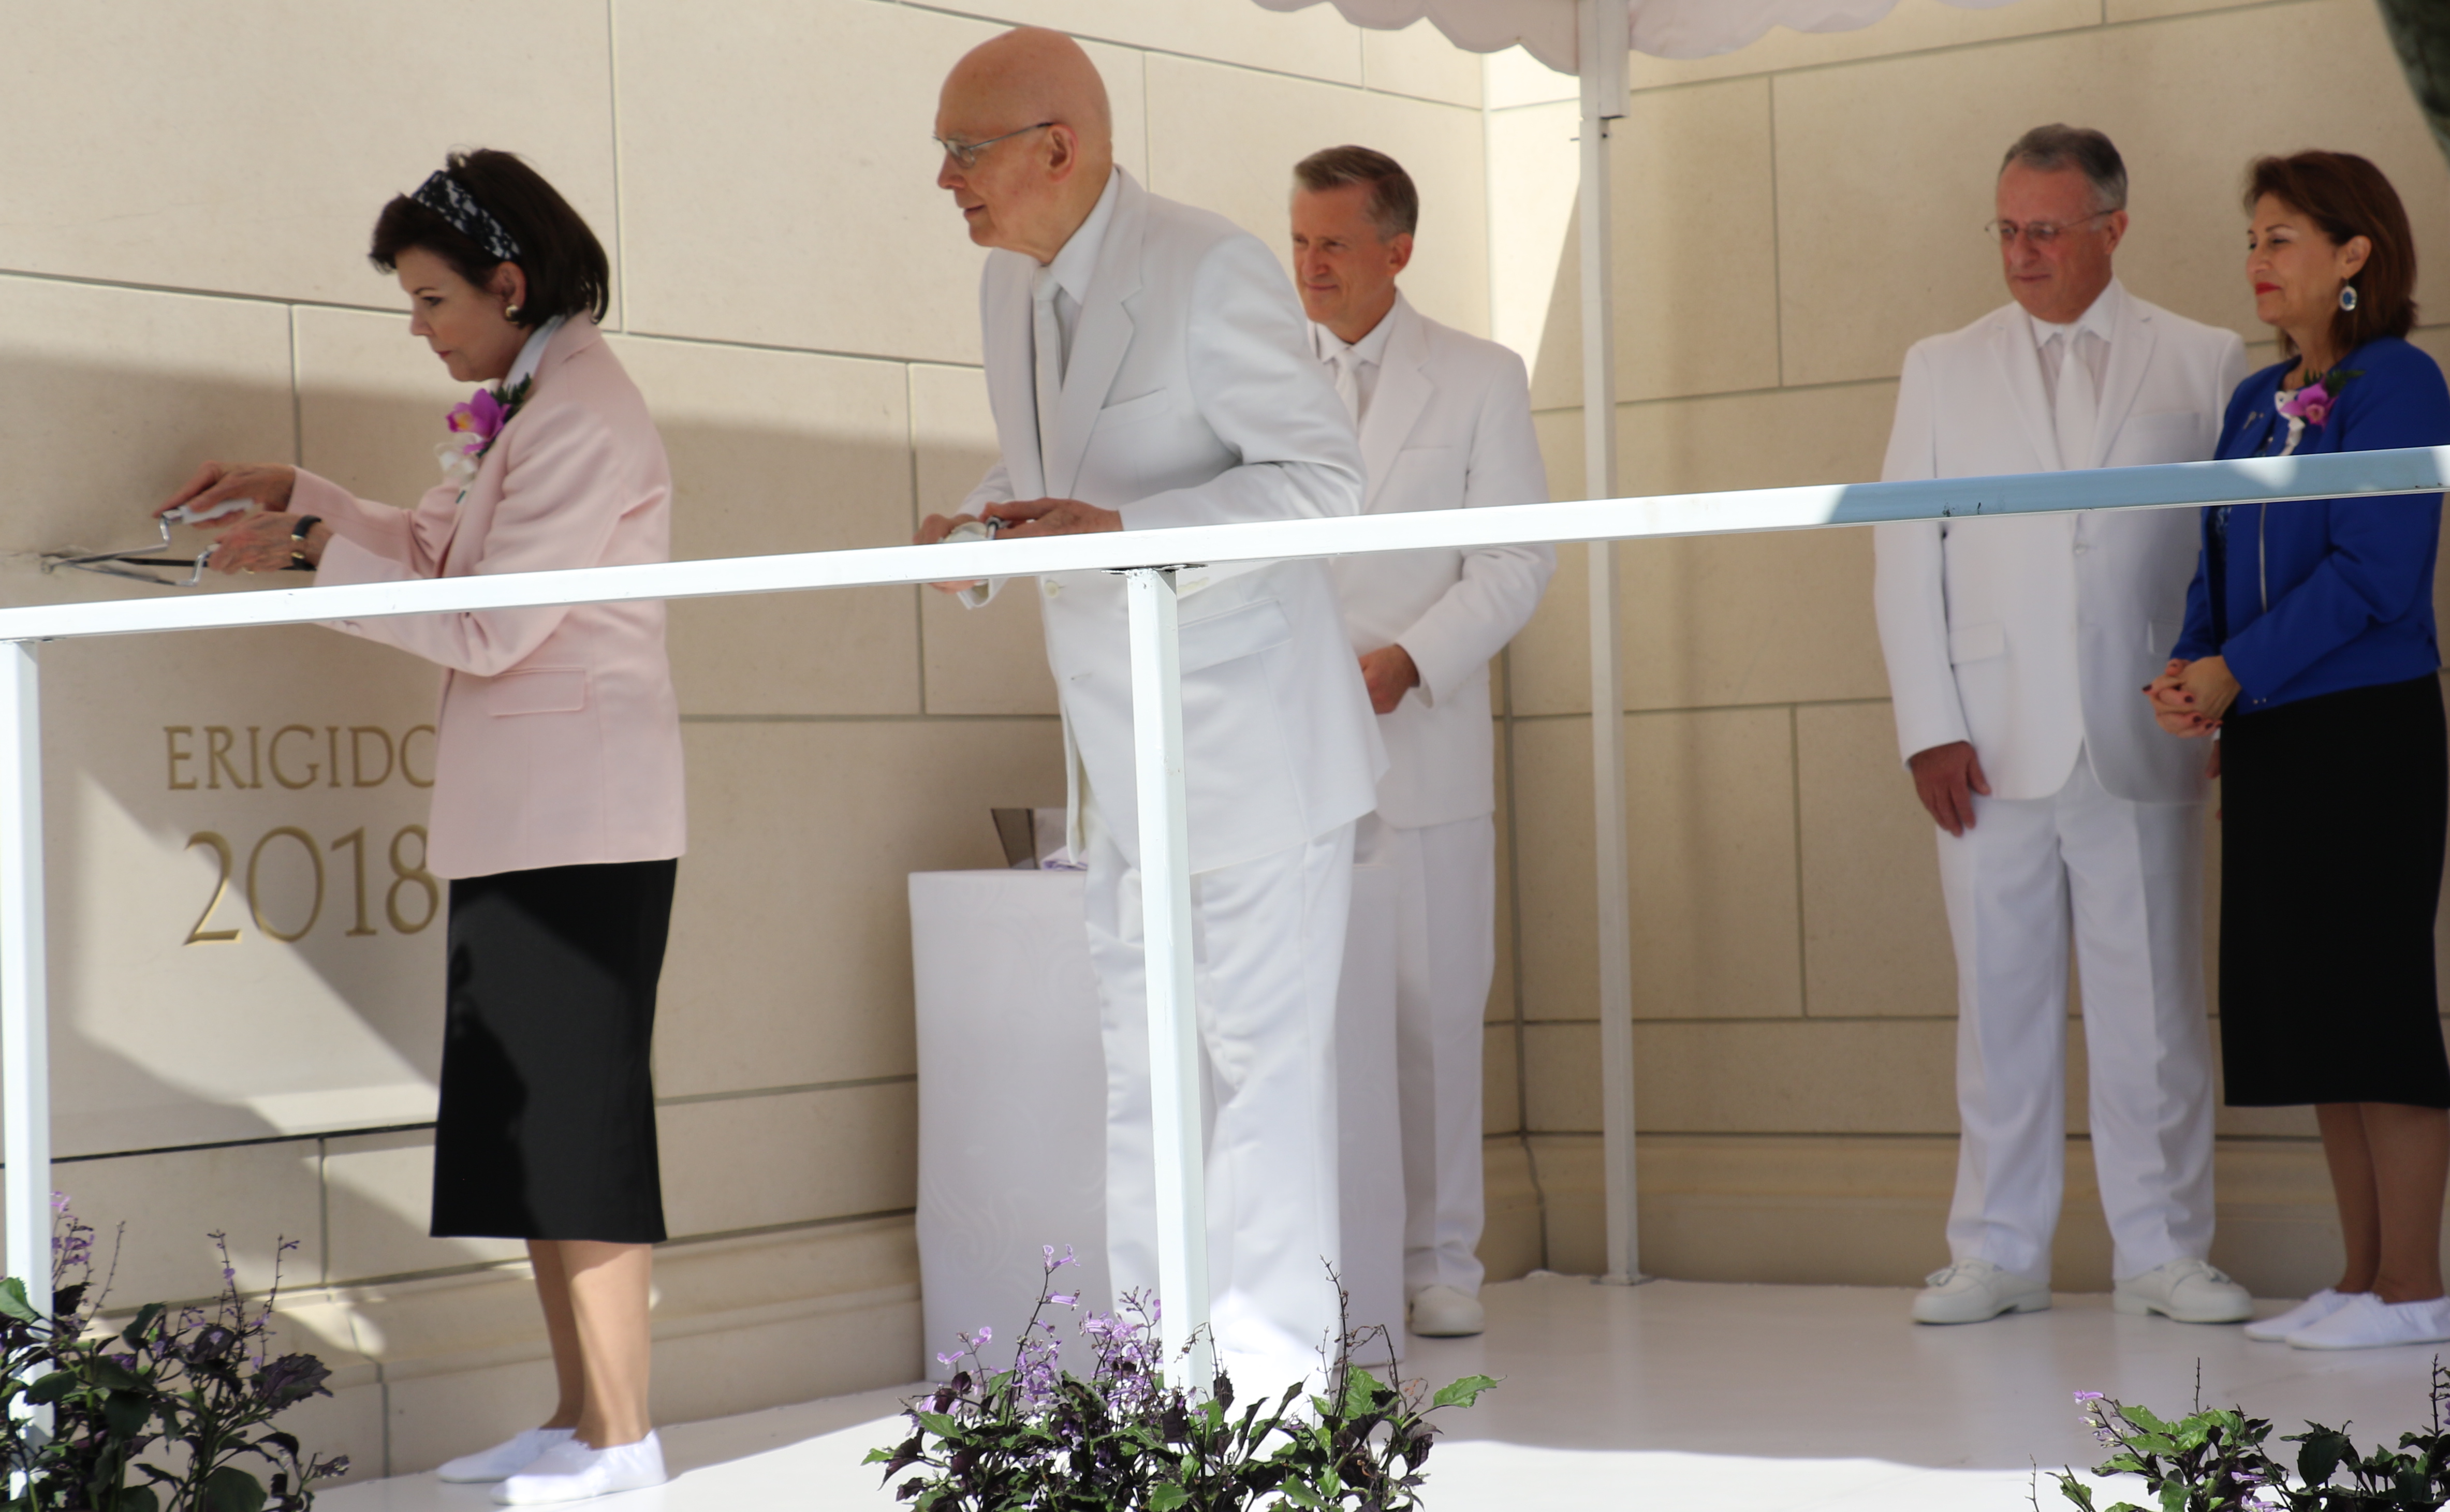 Sister Kristen Oaks, left, places some mortar on the temple capstone under the watch of her husband, President Dallin H. Oaks of the First Presidency during the Sunday, Nov. 9, 2018, dedication of the Barranquilla Colombia Temple. At right are Elder Ulisses Soares and his wife, Sister Rosana Soares.